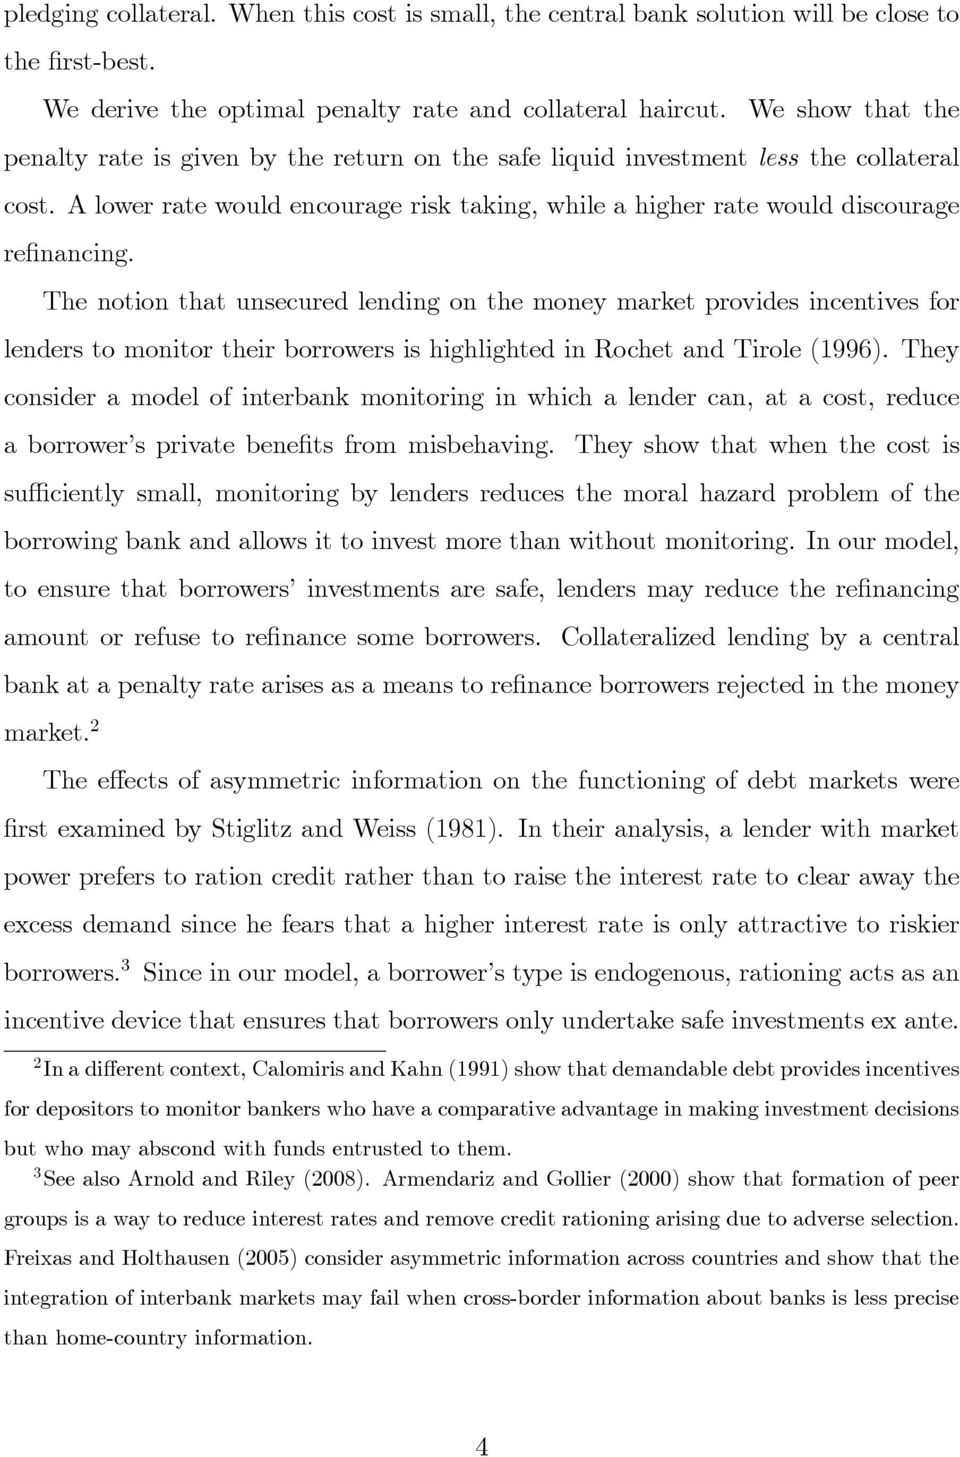 The notion that unsecured lending on the money market provides incentives for lenders to monitor their borrowers is highlighted in Rochet and Tirole (1996).